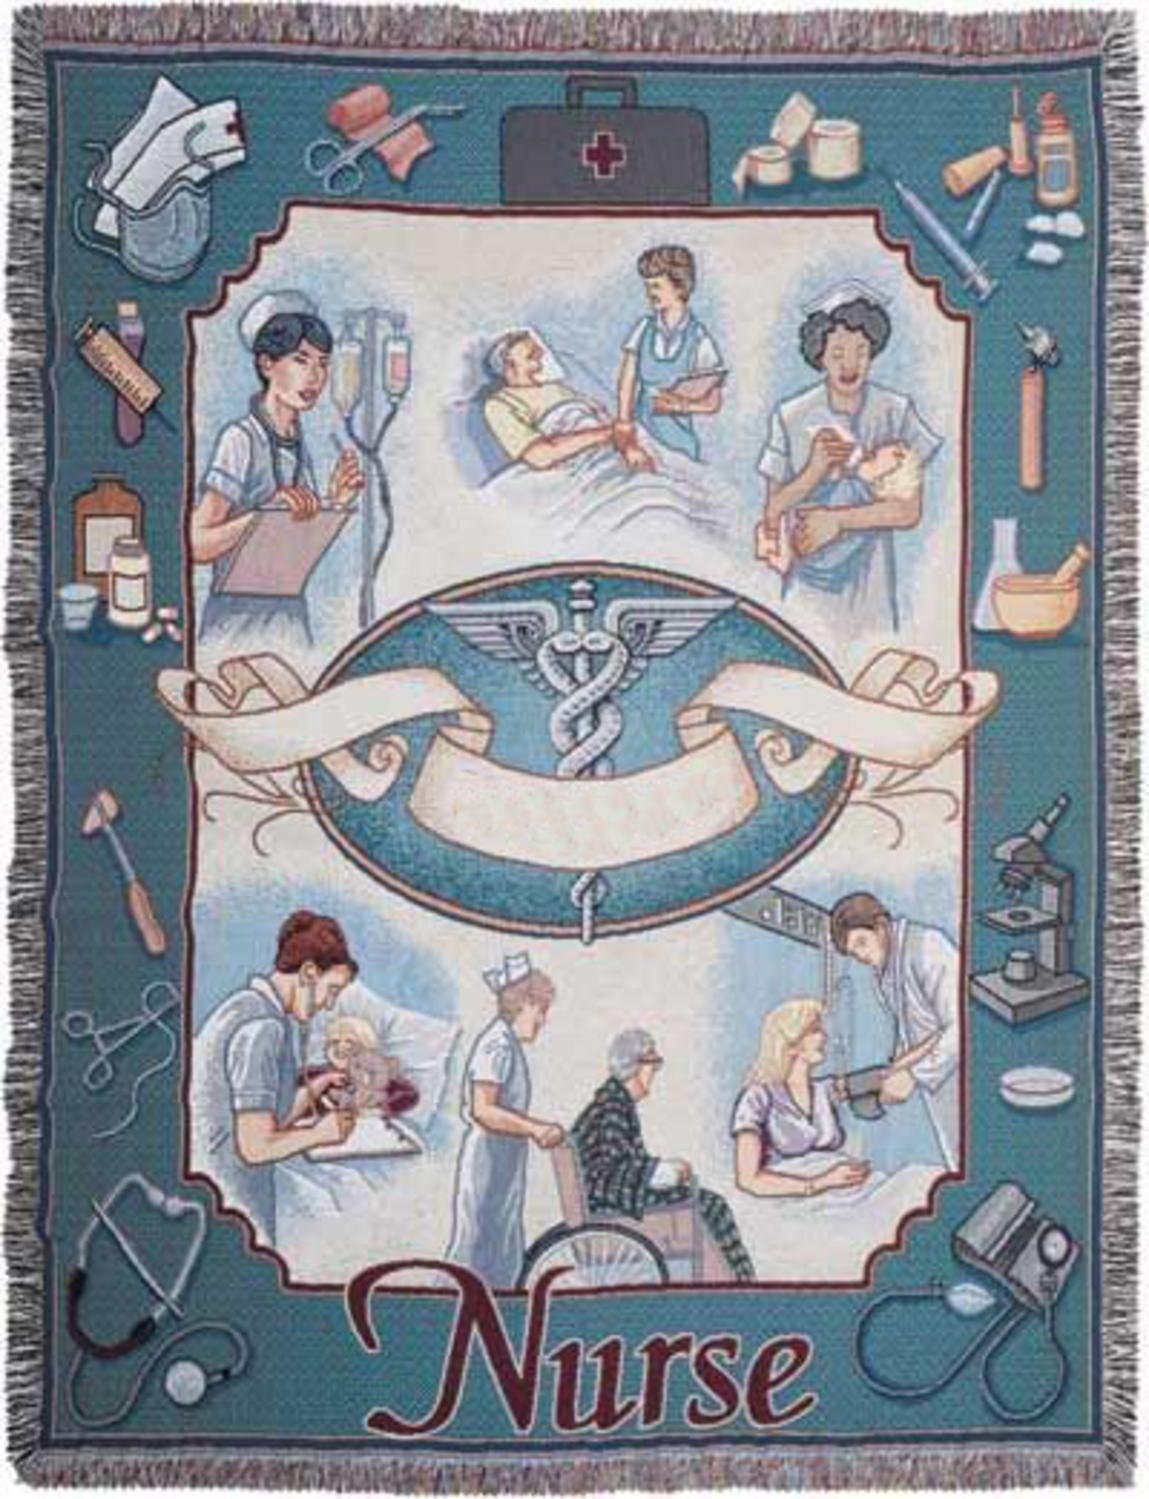 Simply Home Nurse Profession Pictorial Afghan Throw Tapestry Blanket 50 x 70 USA Made SKU RTP007514